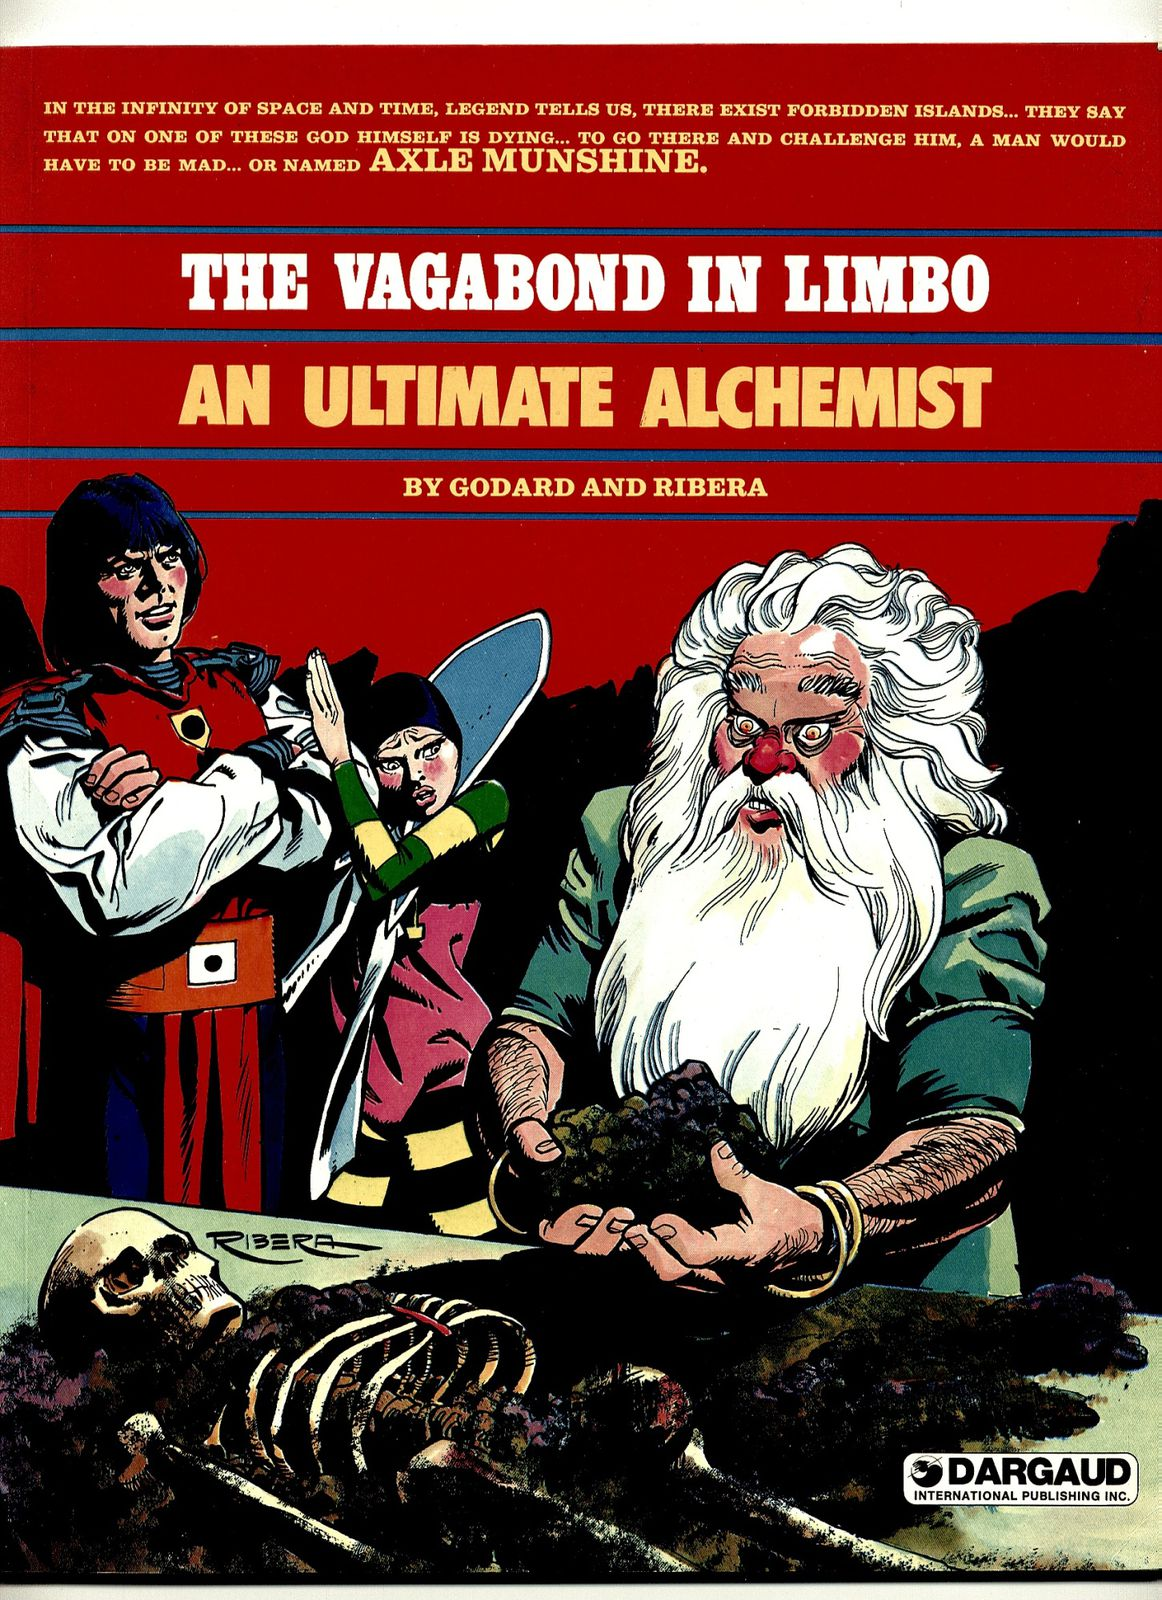 vagabond of limbo - an ultimate alchemist - what is reality papa